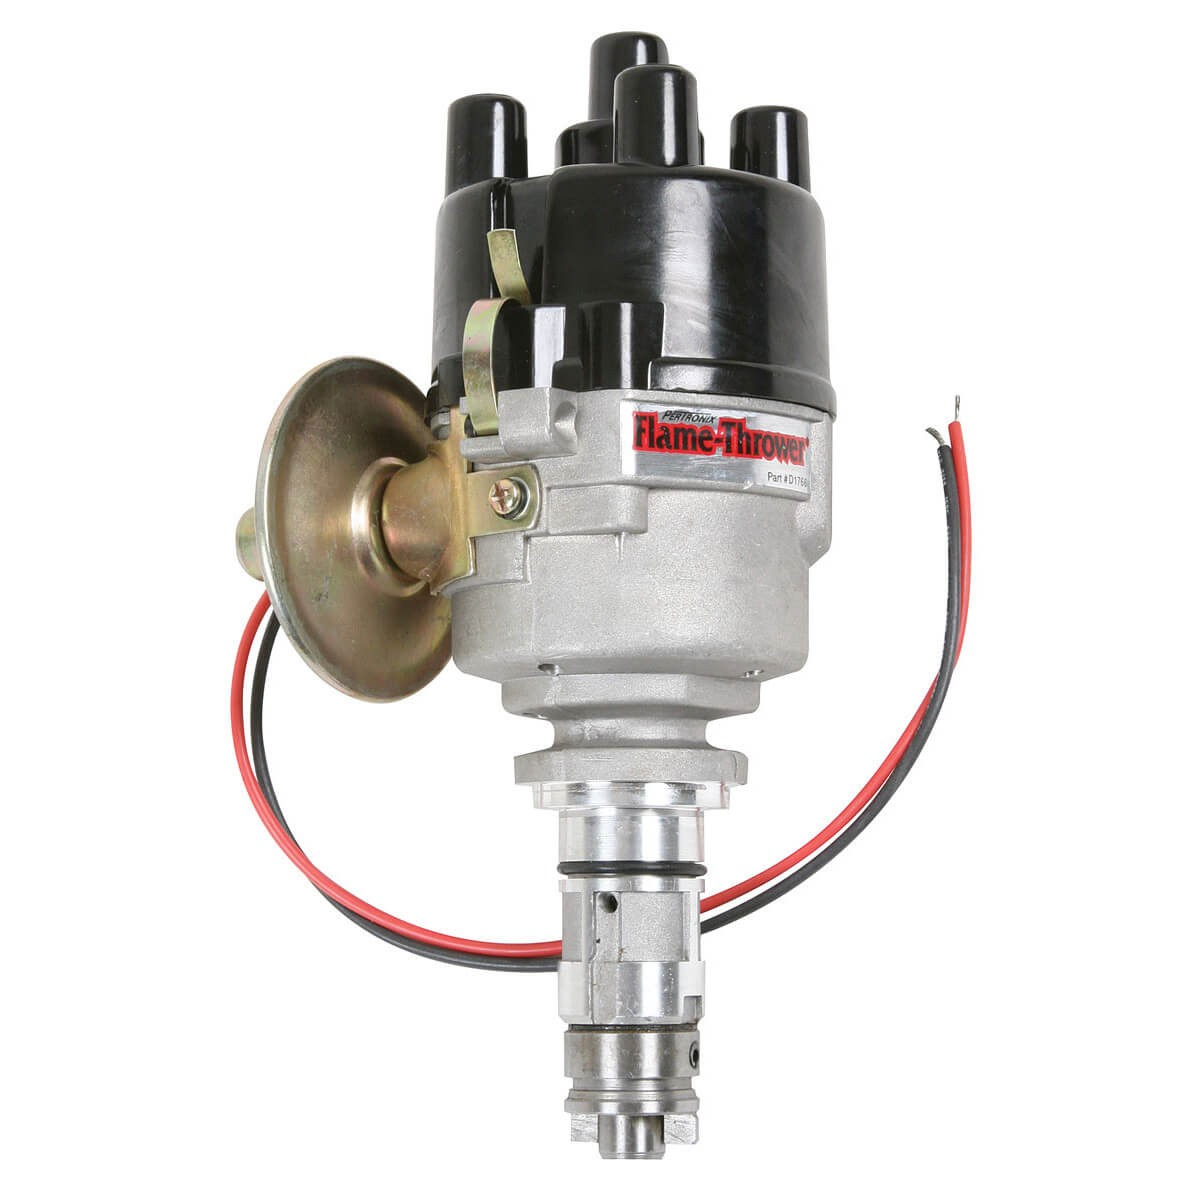 hight resolution of pertronix flame thrower electronic distributor